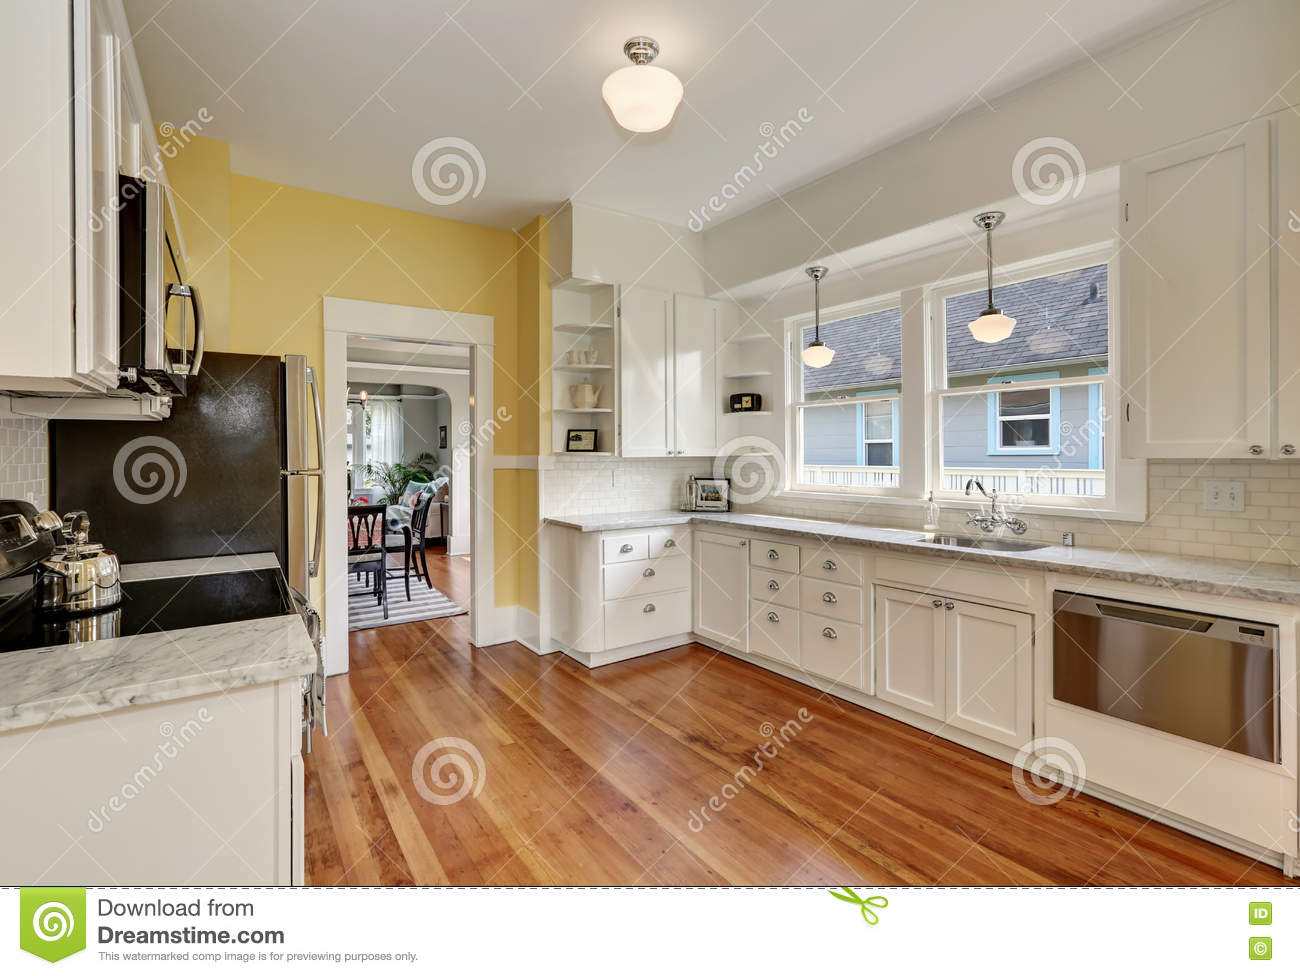 yellow kitchen walls with white cabinets kitchen interior with white cabinets yellow walls and 2139